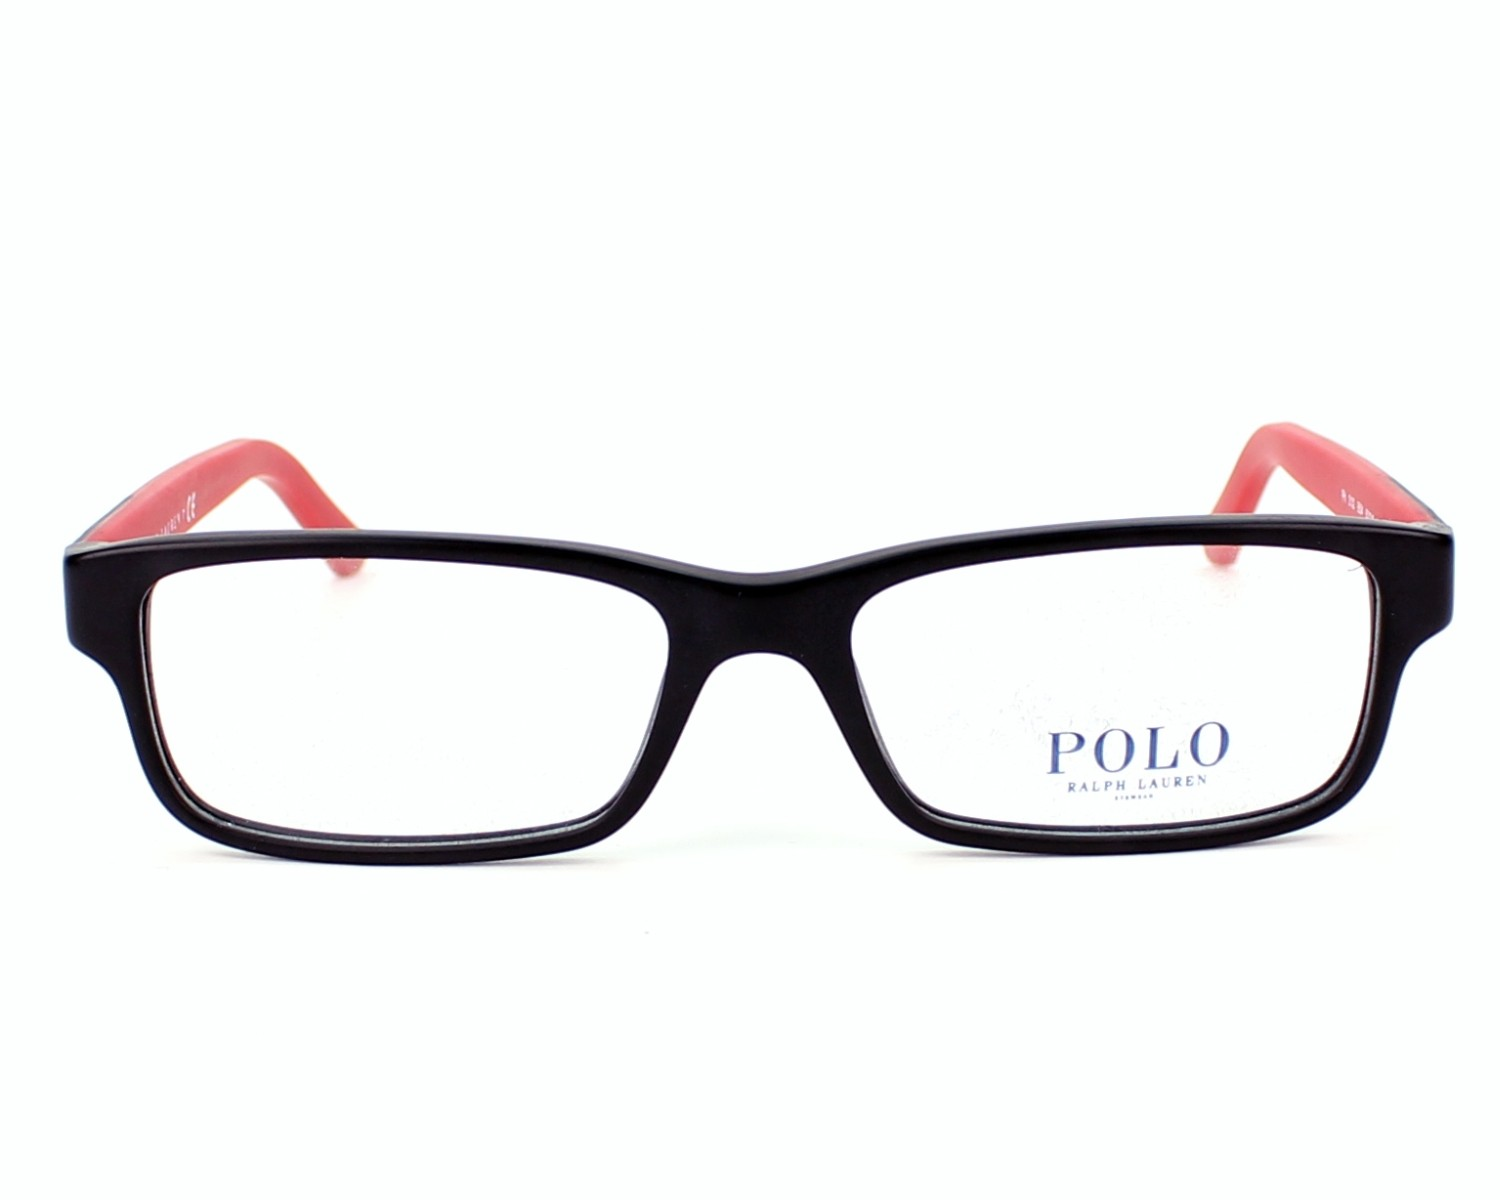 8b1a589aa58 eyeglasses Polo Ralph Lauren PH-2132 5504 - Black Red front view